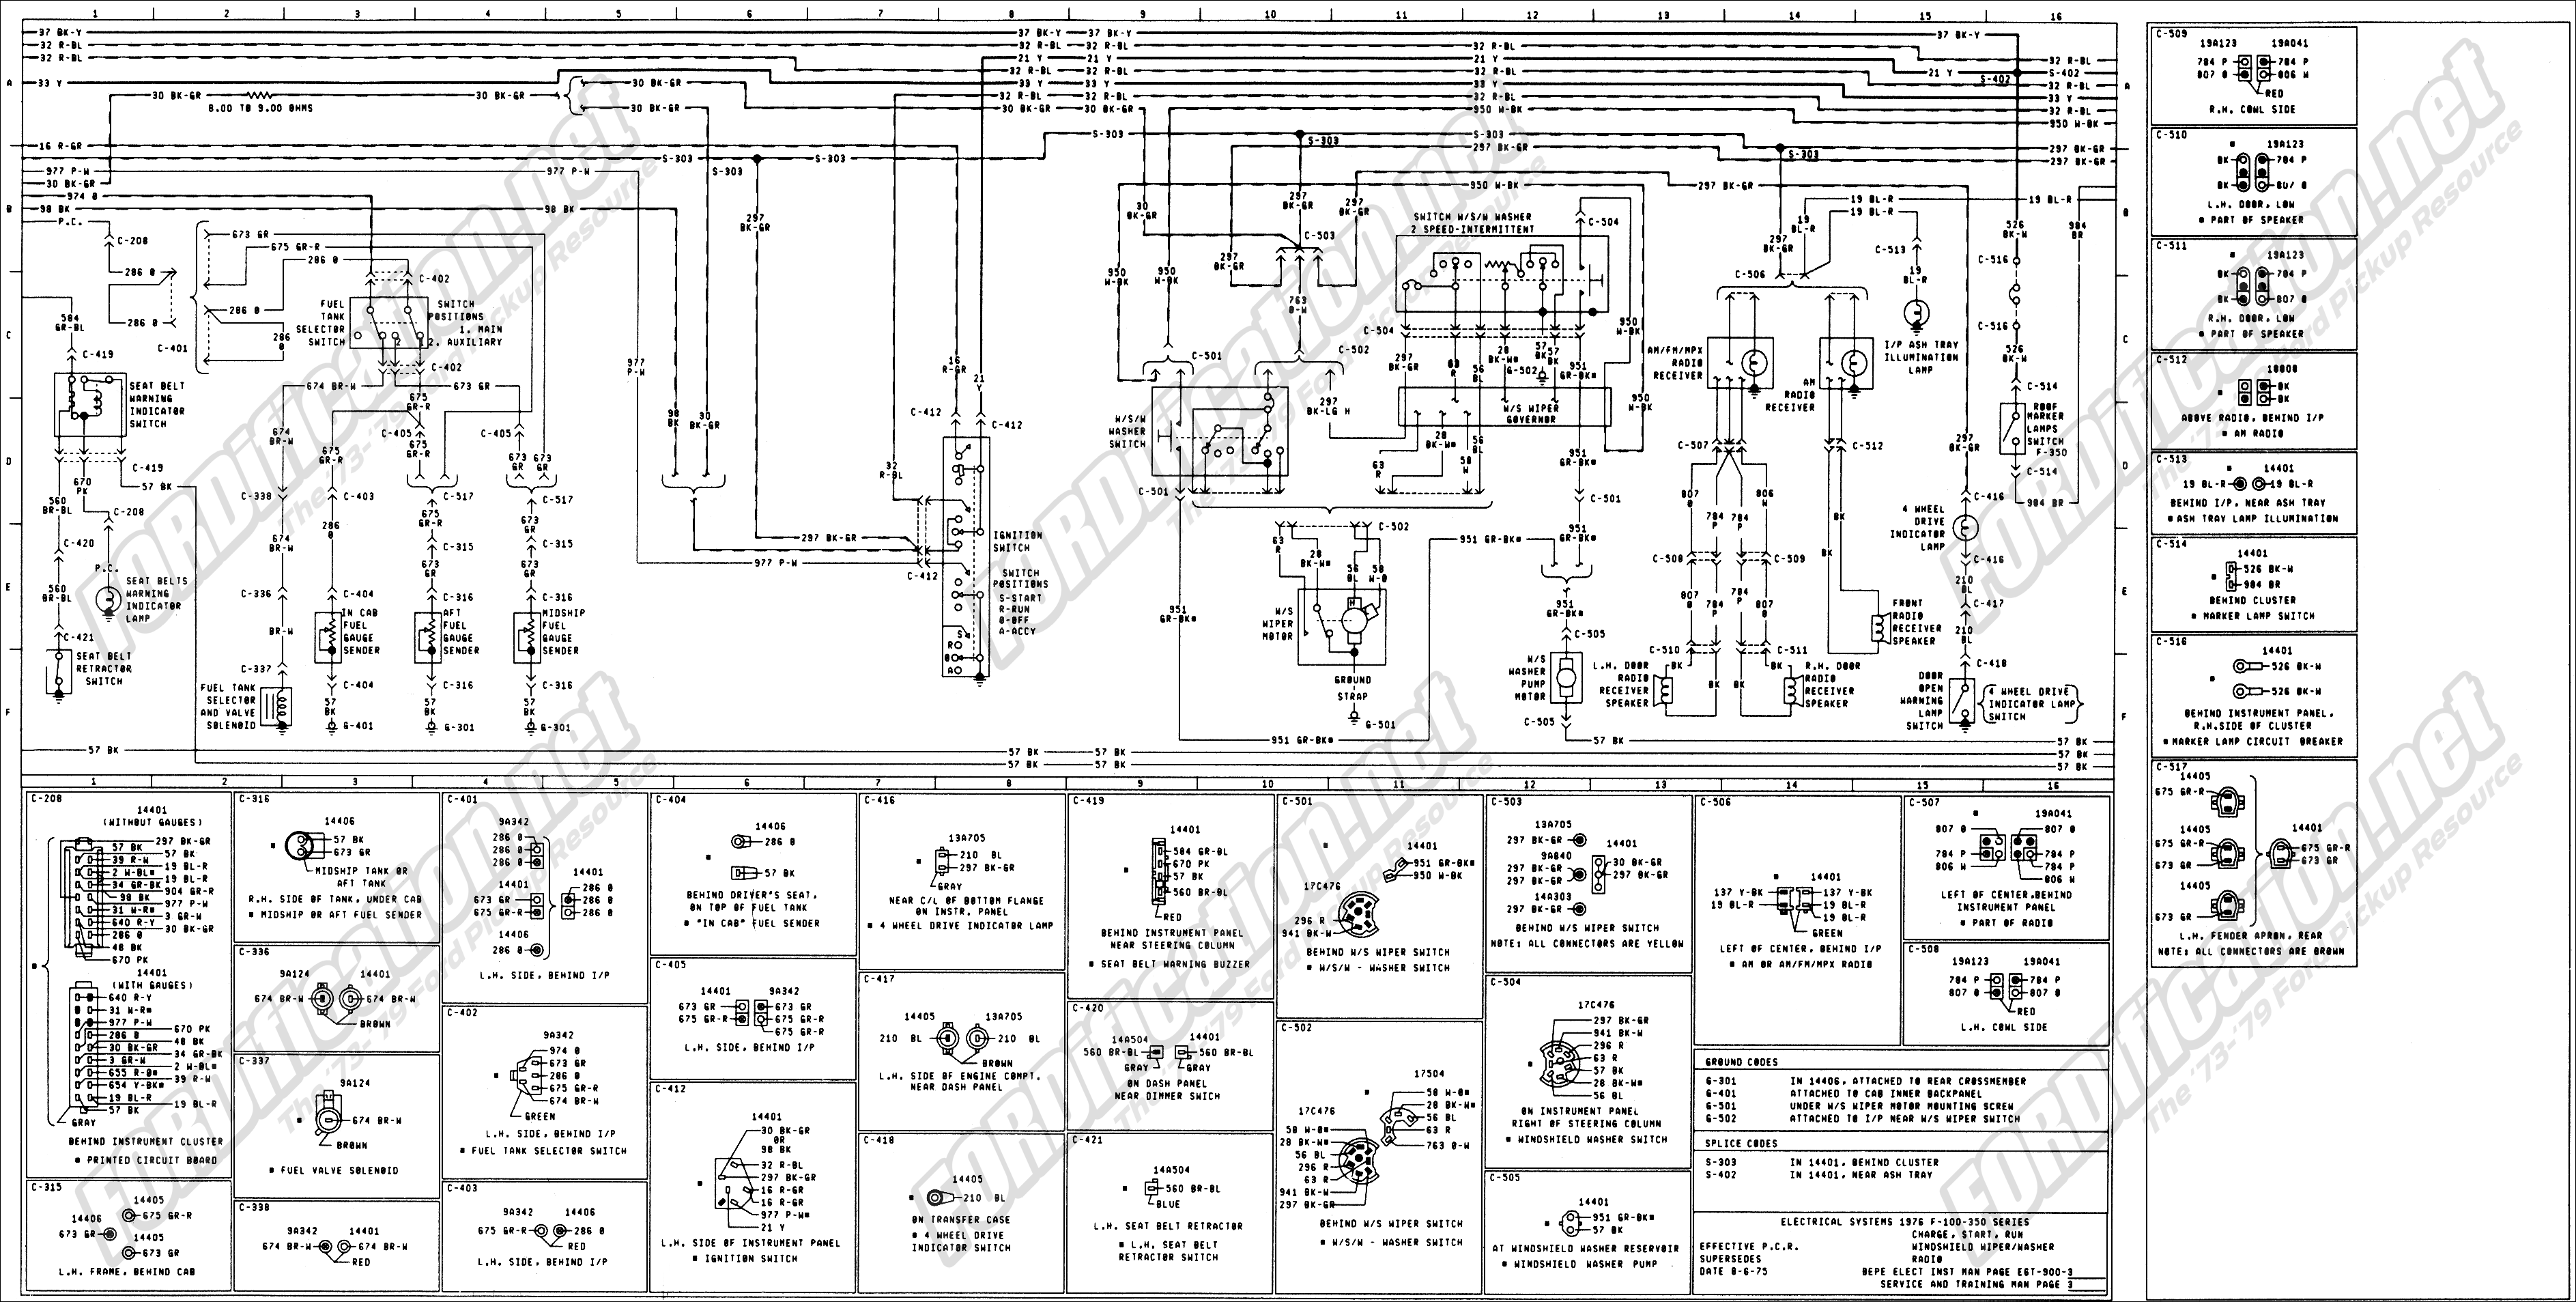 2003 Ford E150 Washer Diagram Wiring Schematic 1999 Fuse 1973 1979 Truck Diagrams Schematics Fordification Net Rh